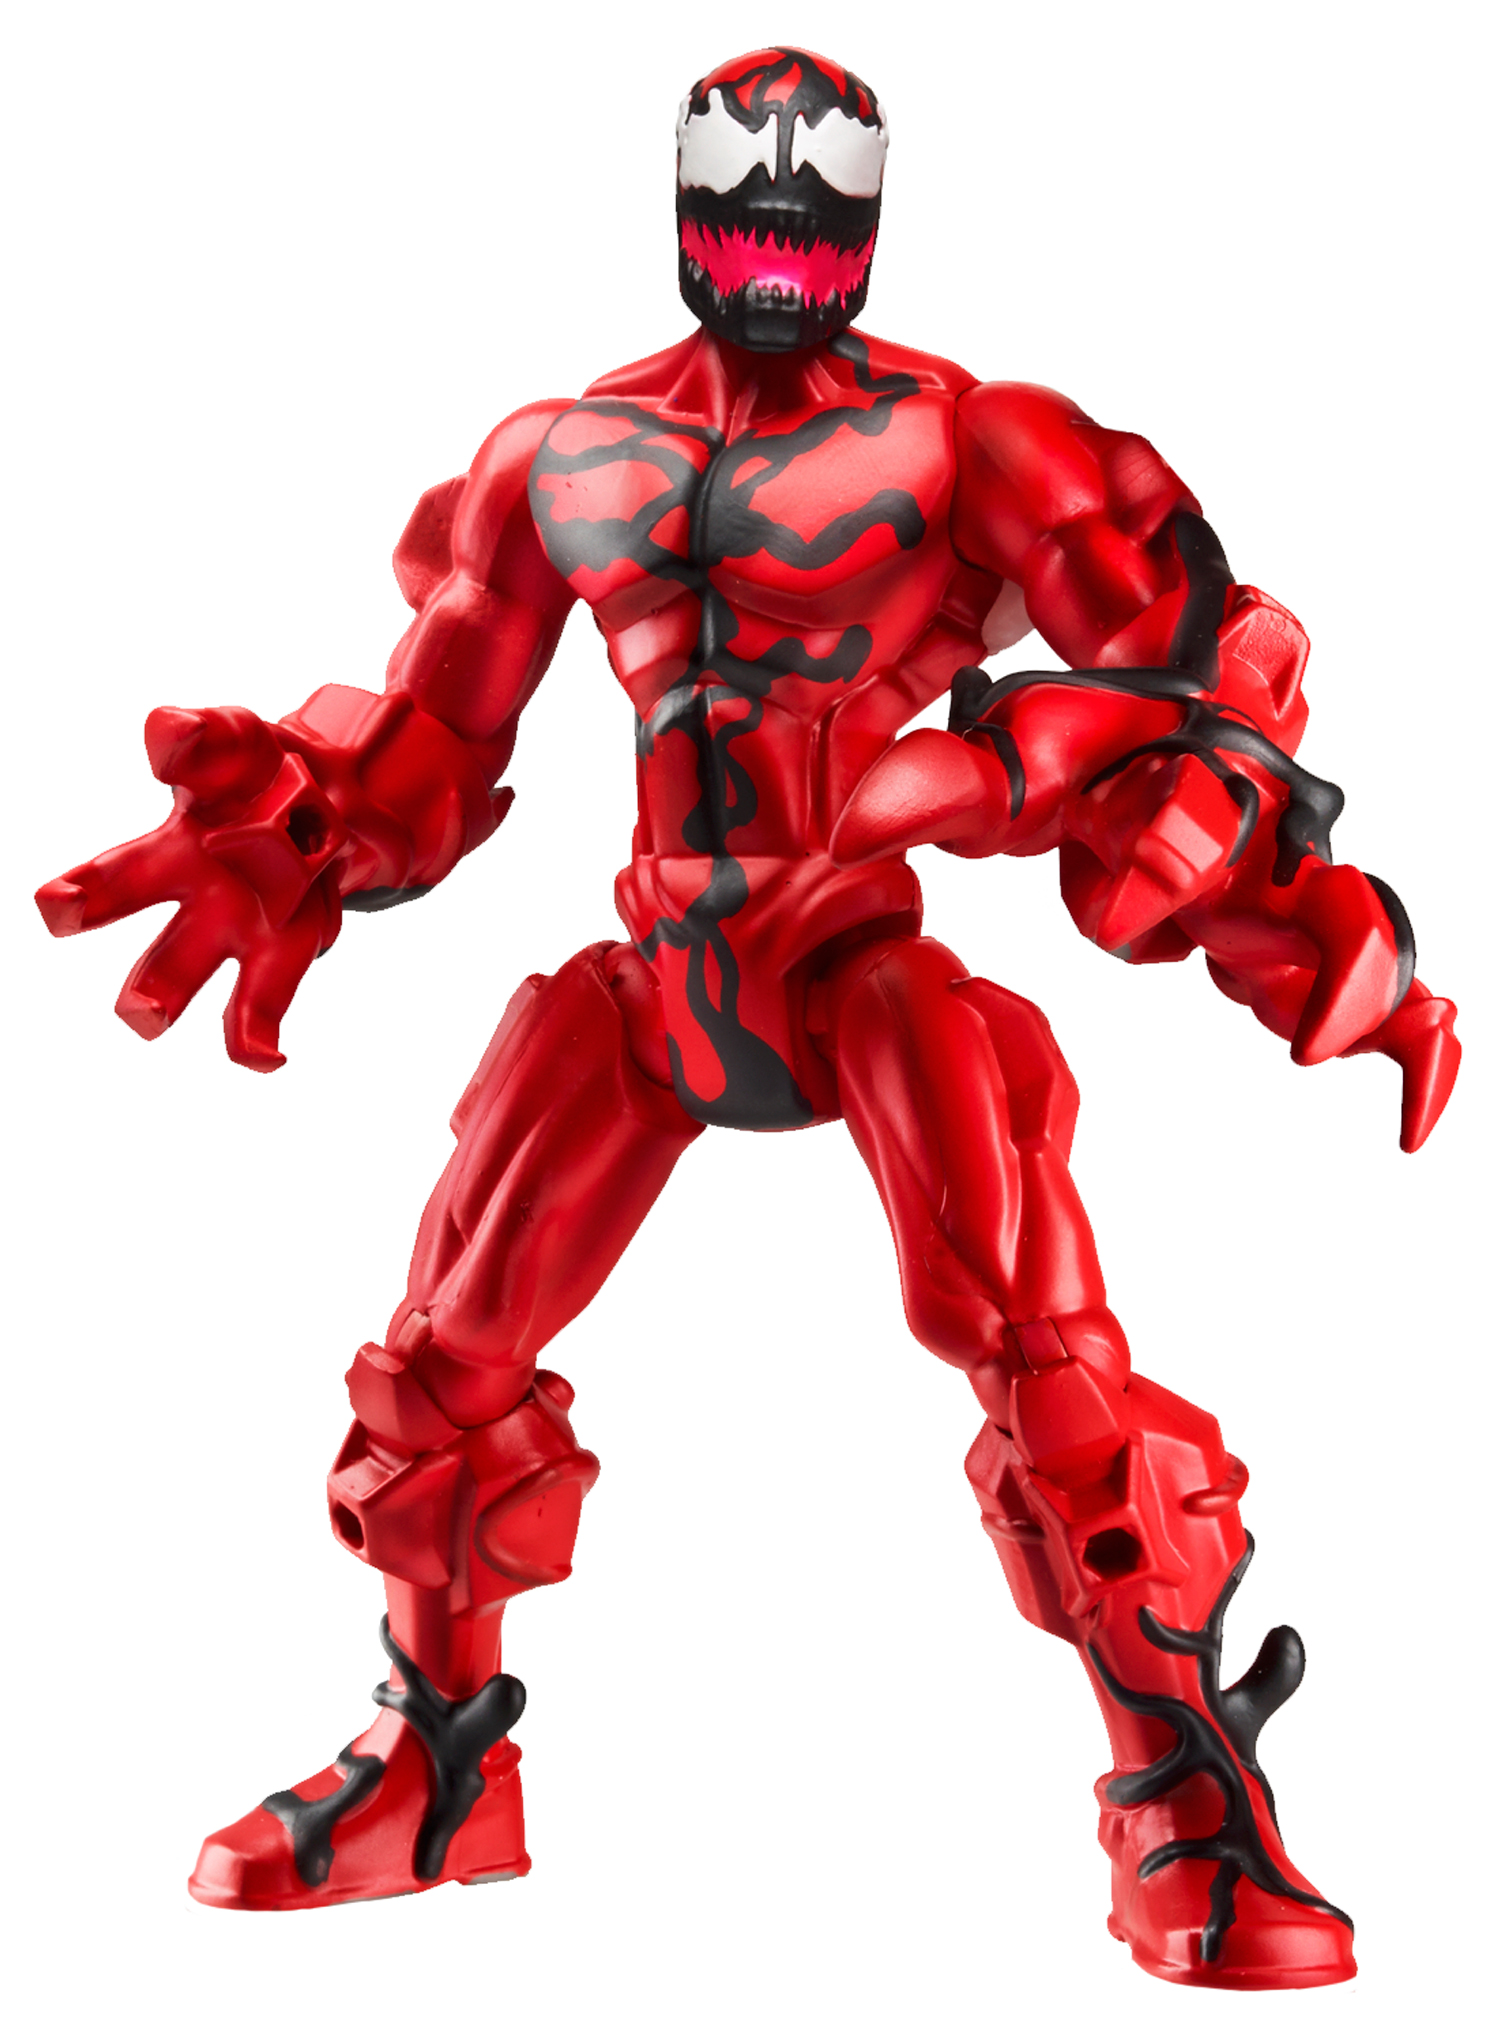 Marvel Malvorlagen Marvel Superhero The Marvel Super: Marvel Toys Marvel Super Hero Mashers Carnage